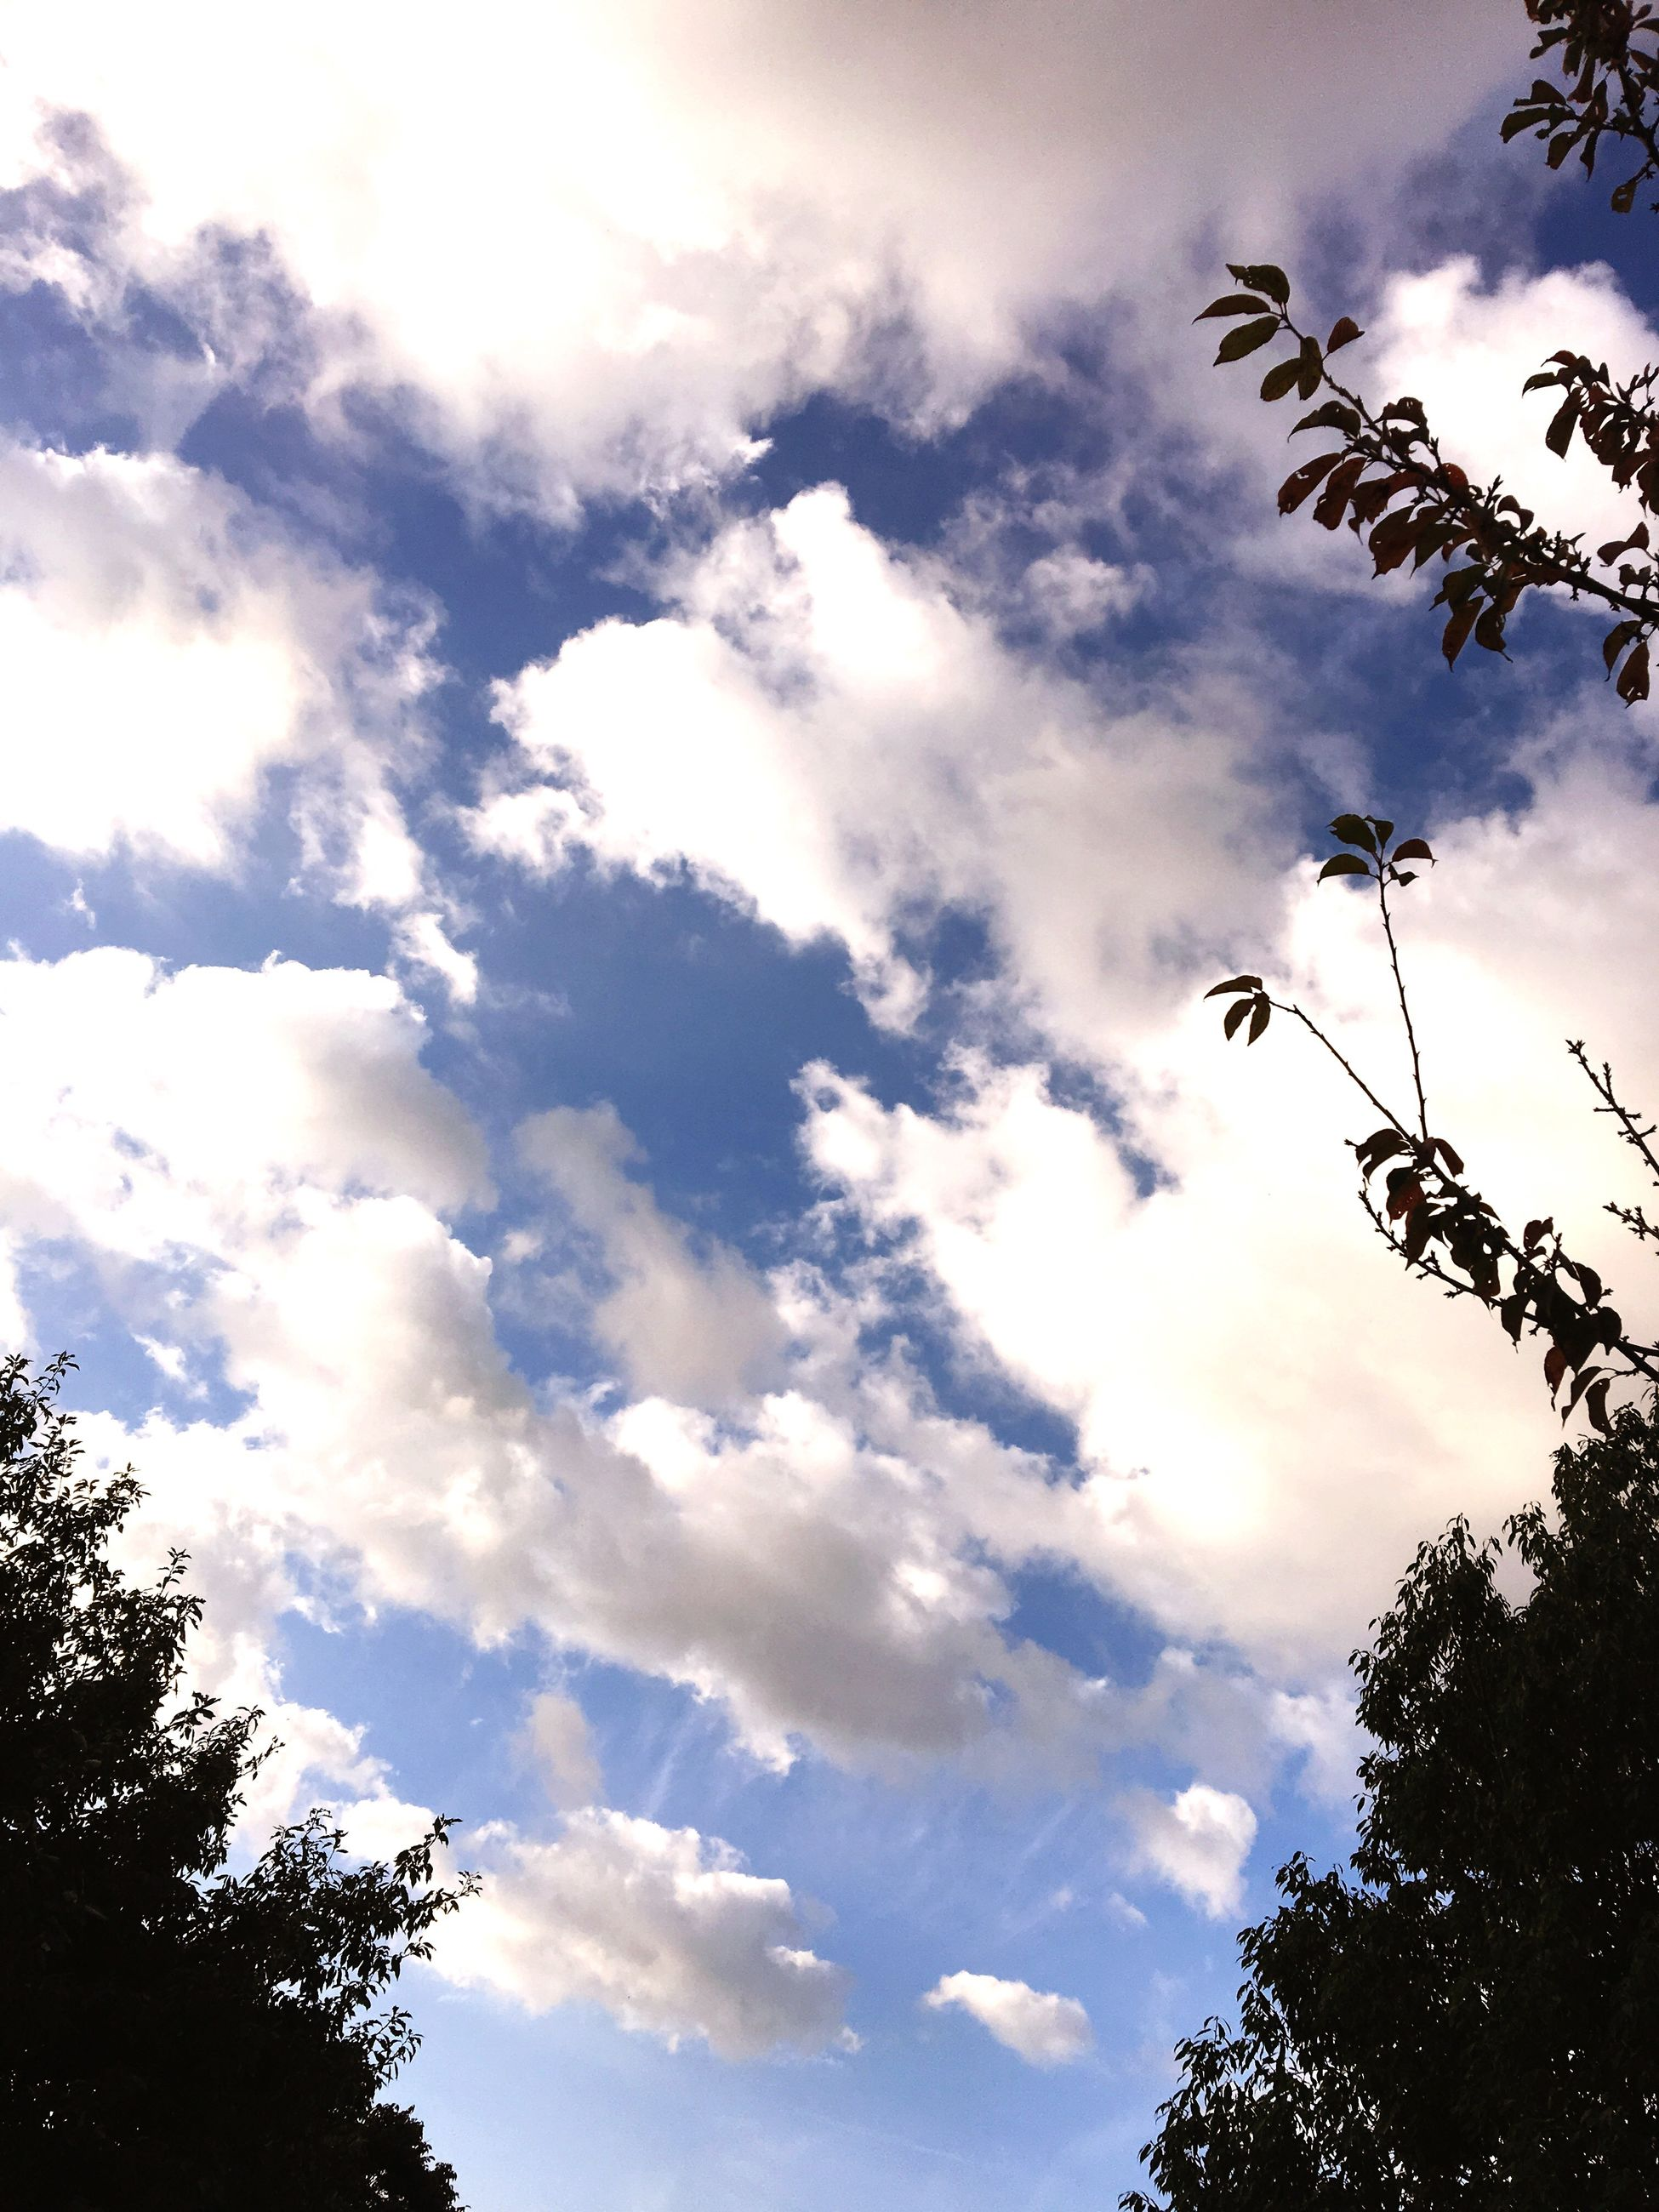 low angle view, tree, sky, cloud - sky, scenics, beauty in nature, tranquility, tranquil scene, nature, cloud, growth, blue, cloudy, branch, day, outdoors, treetop, cloudscape, non-urban scene, tall - high, majestic, tree top, no people, cumulus cloud